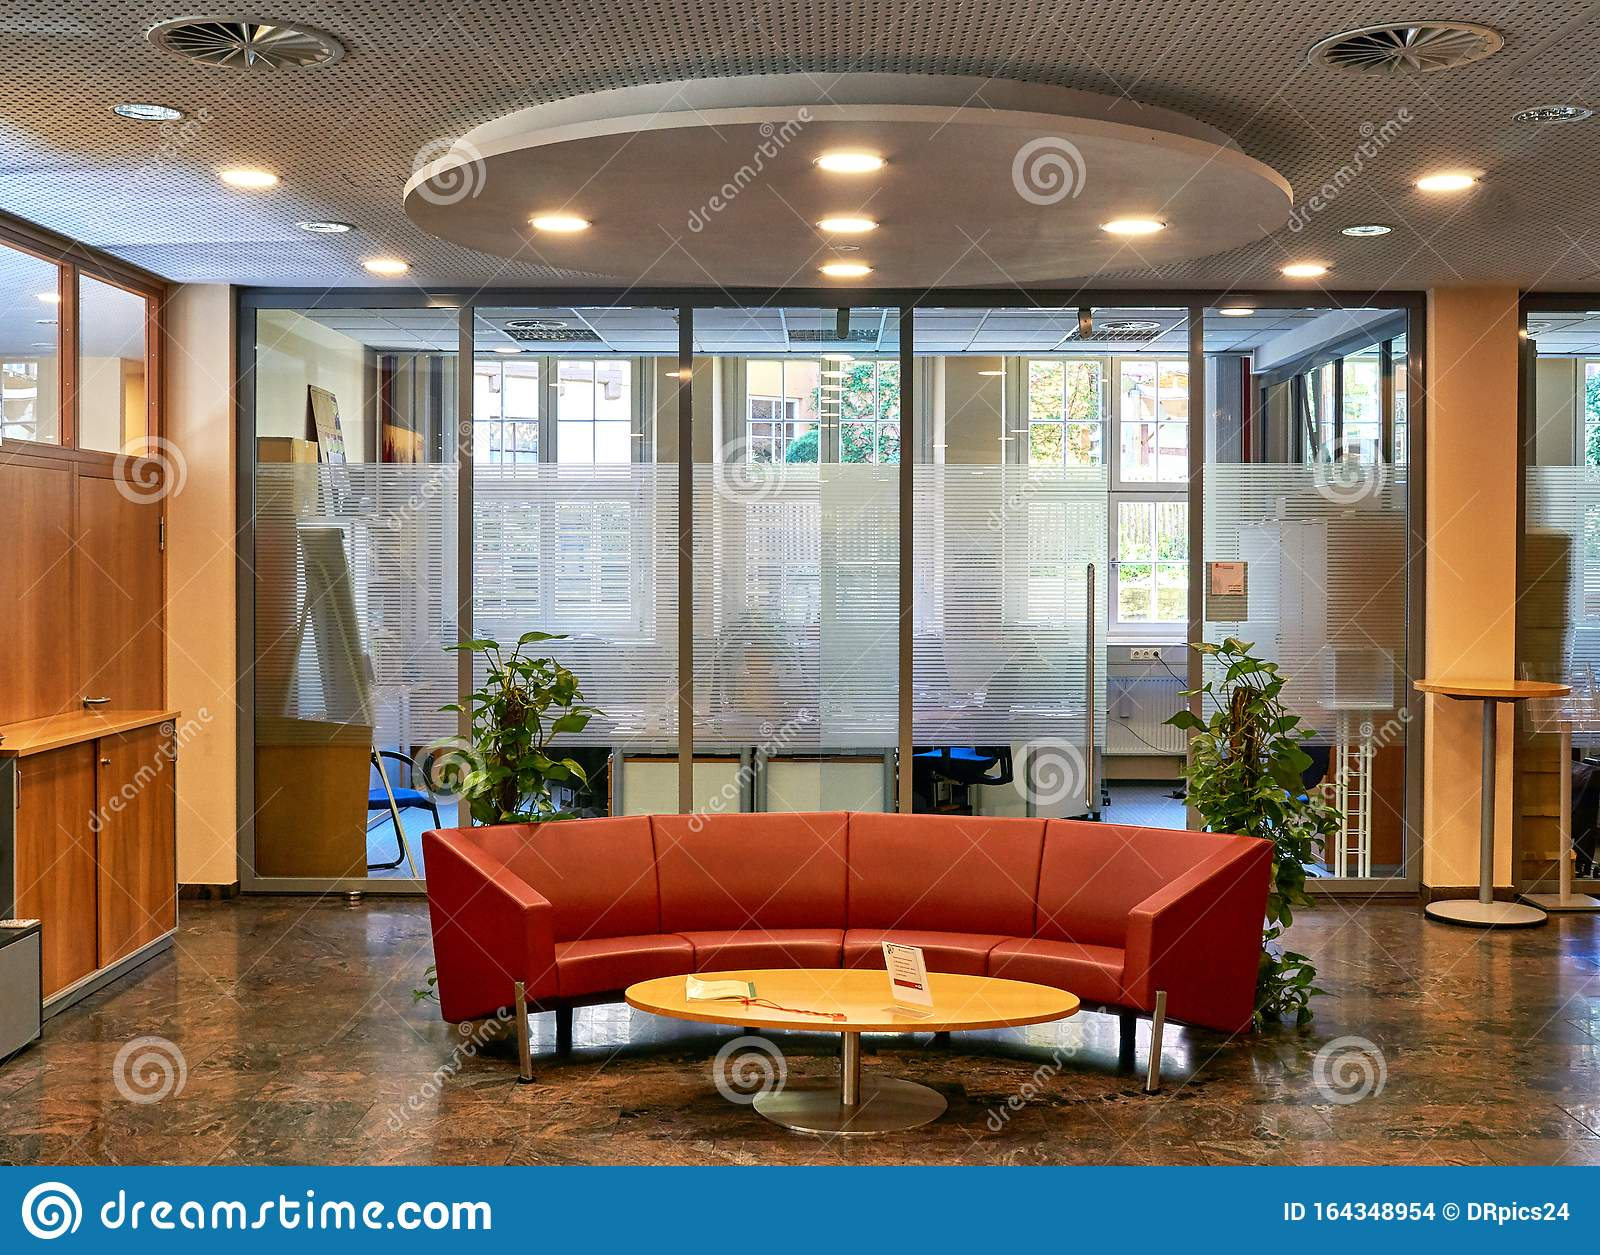 New Ideas For Modern Office Furniture With Reception Stock Photo Image Of Company Decor 164348954